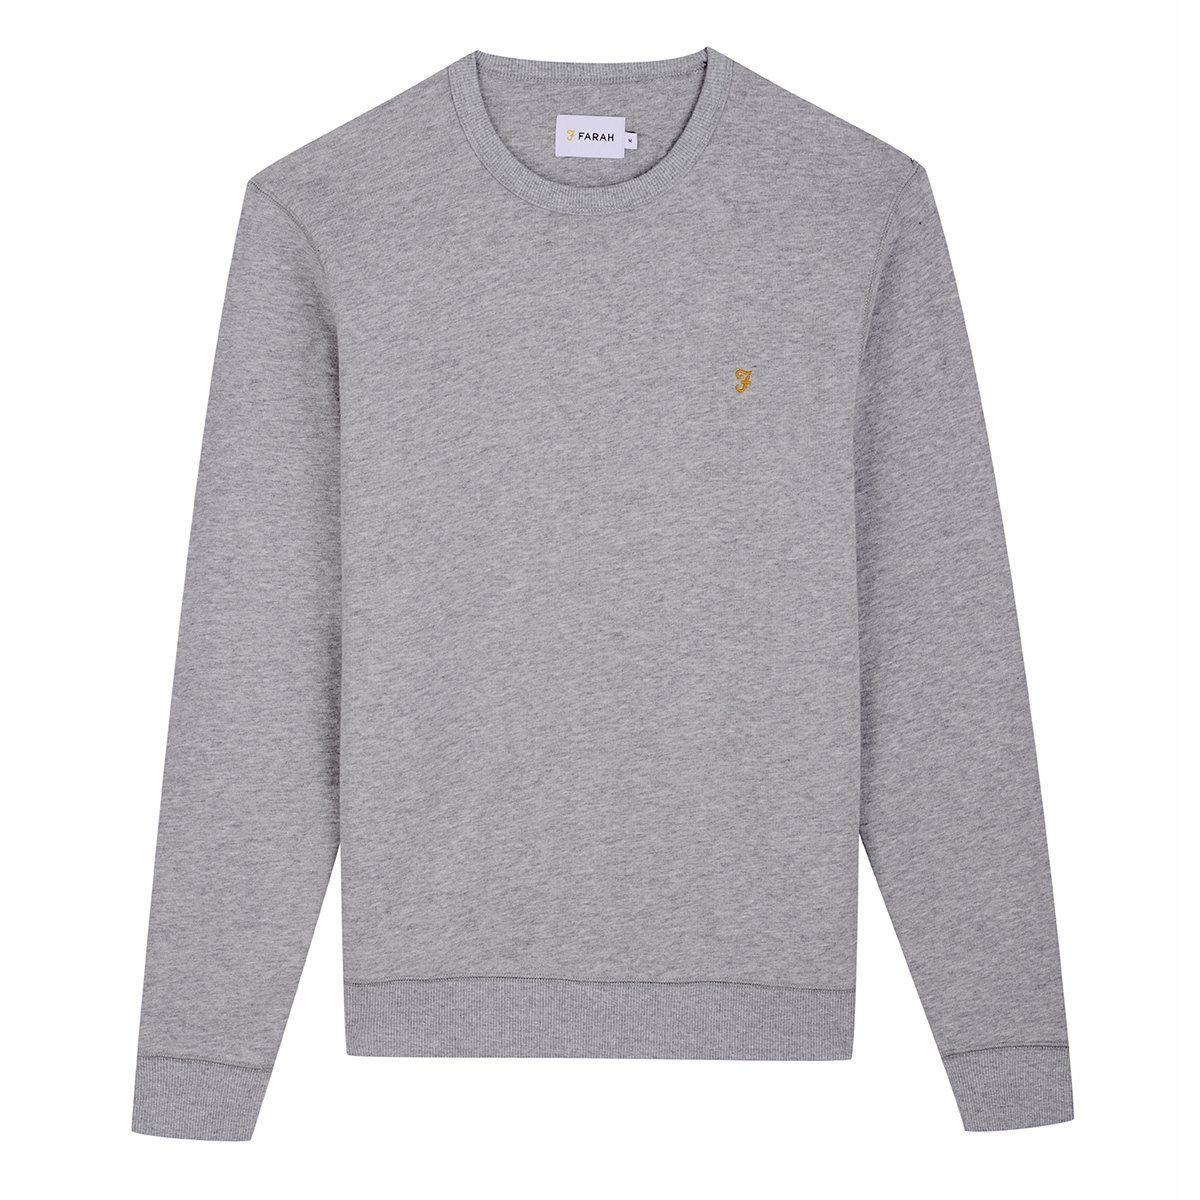 Farah Tim Crew Sweatshirt - Light Grey Marl Small